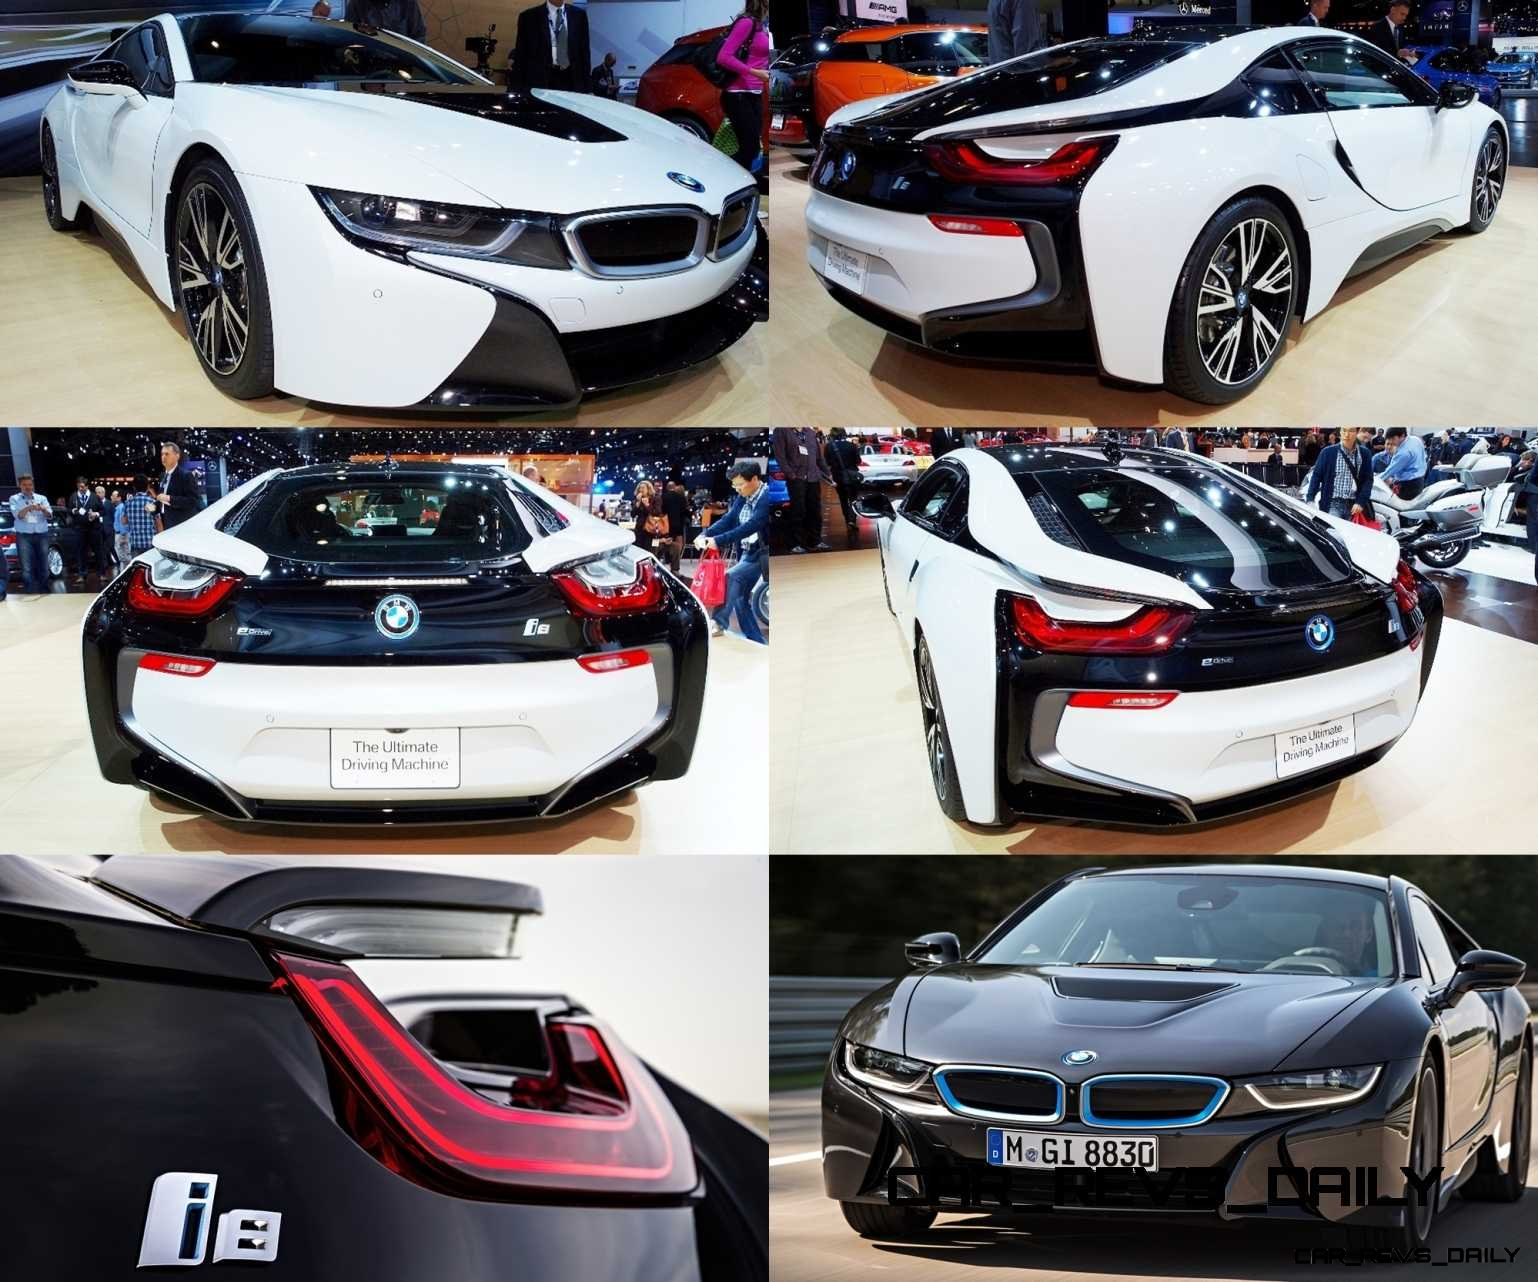 Fun Car GIFs: 2015 BMW i8 in White + Live Visualizer Links